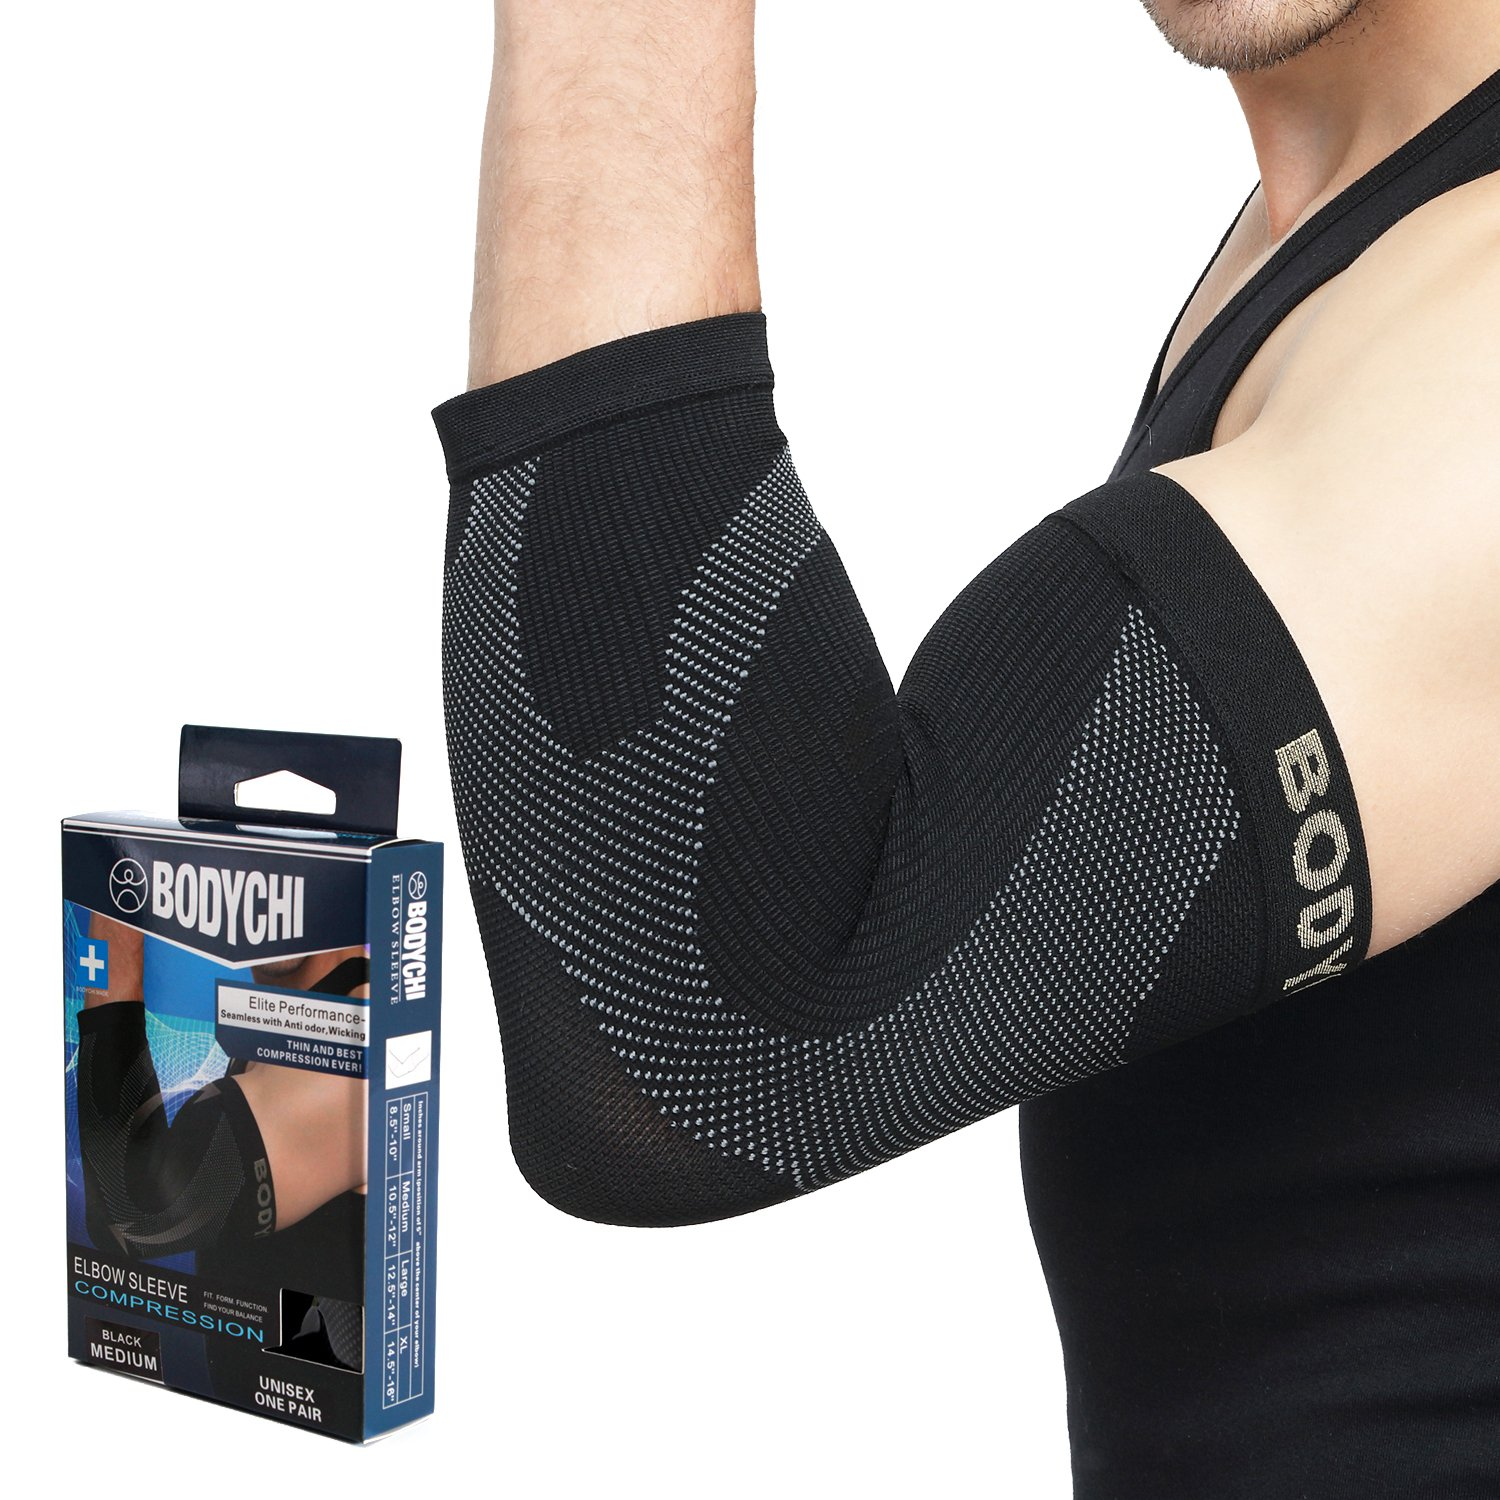 BODYCHI Seamless Elbow Brace Compression Support Sleeve Pair, for Tendonitis, Tennis Elbow, Golf Elbow Treatment, 20-30 mmHg, Medium